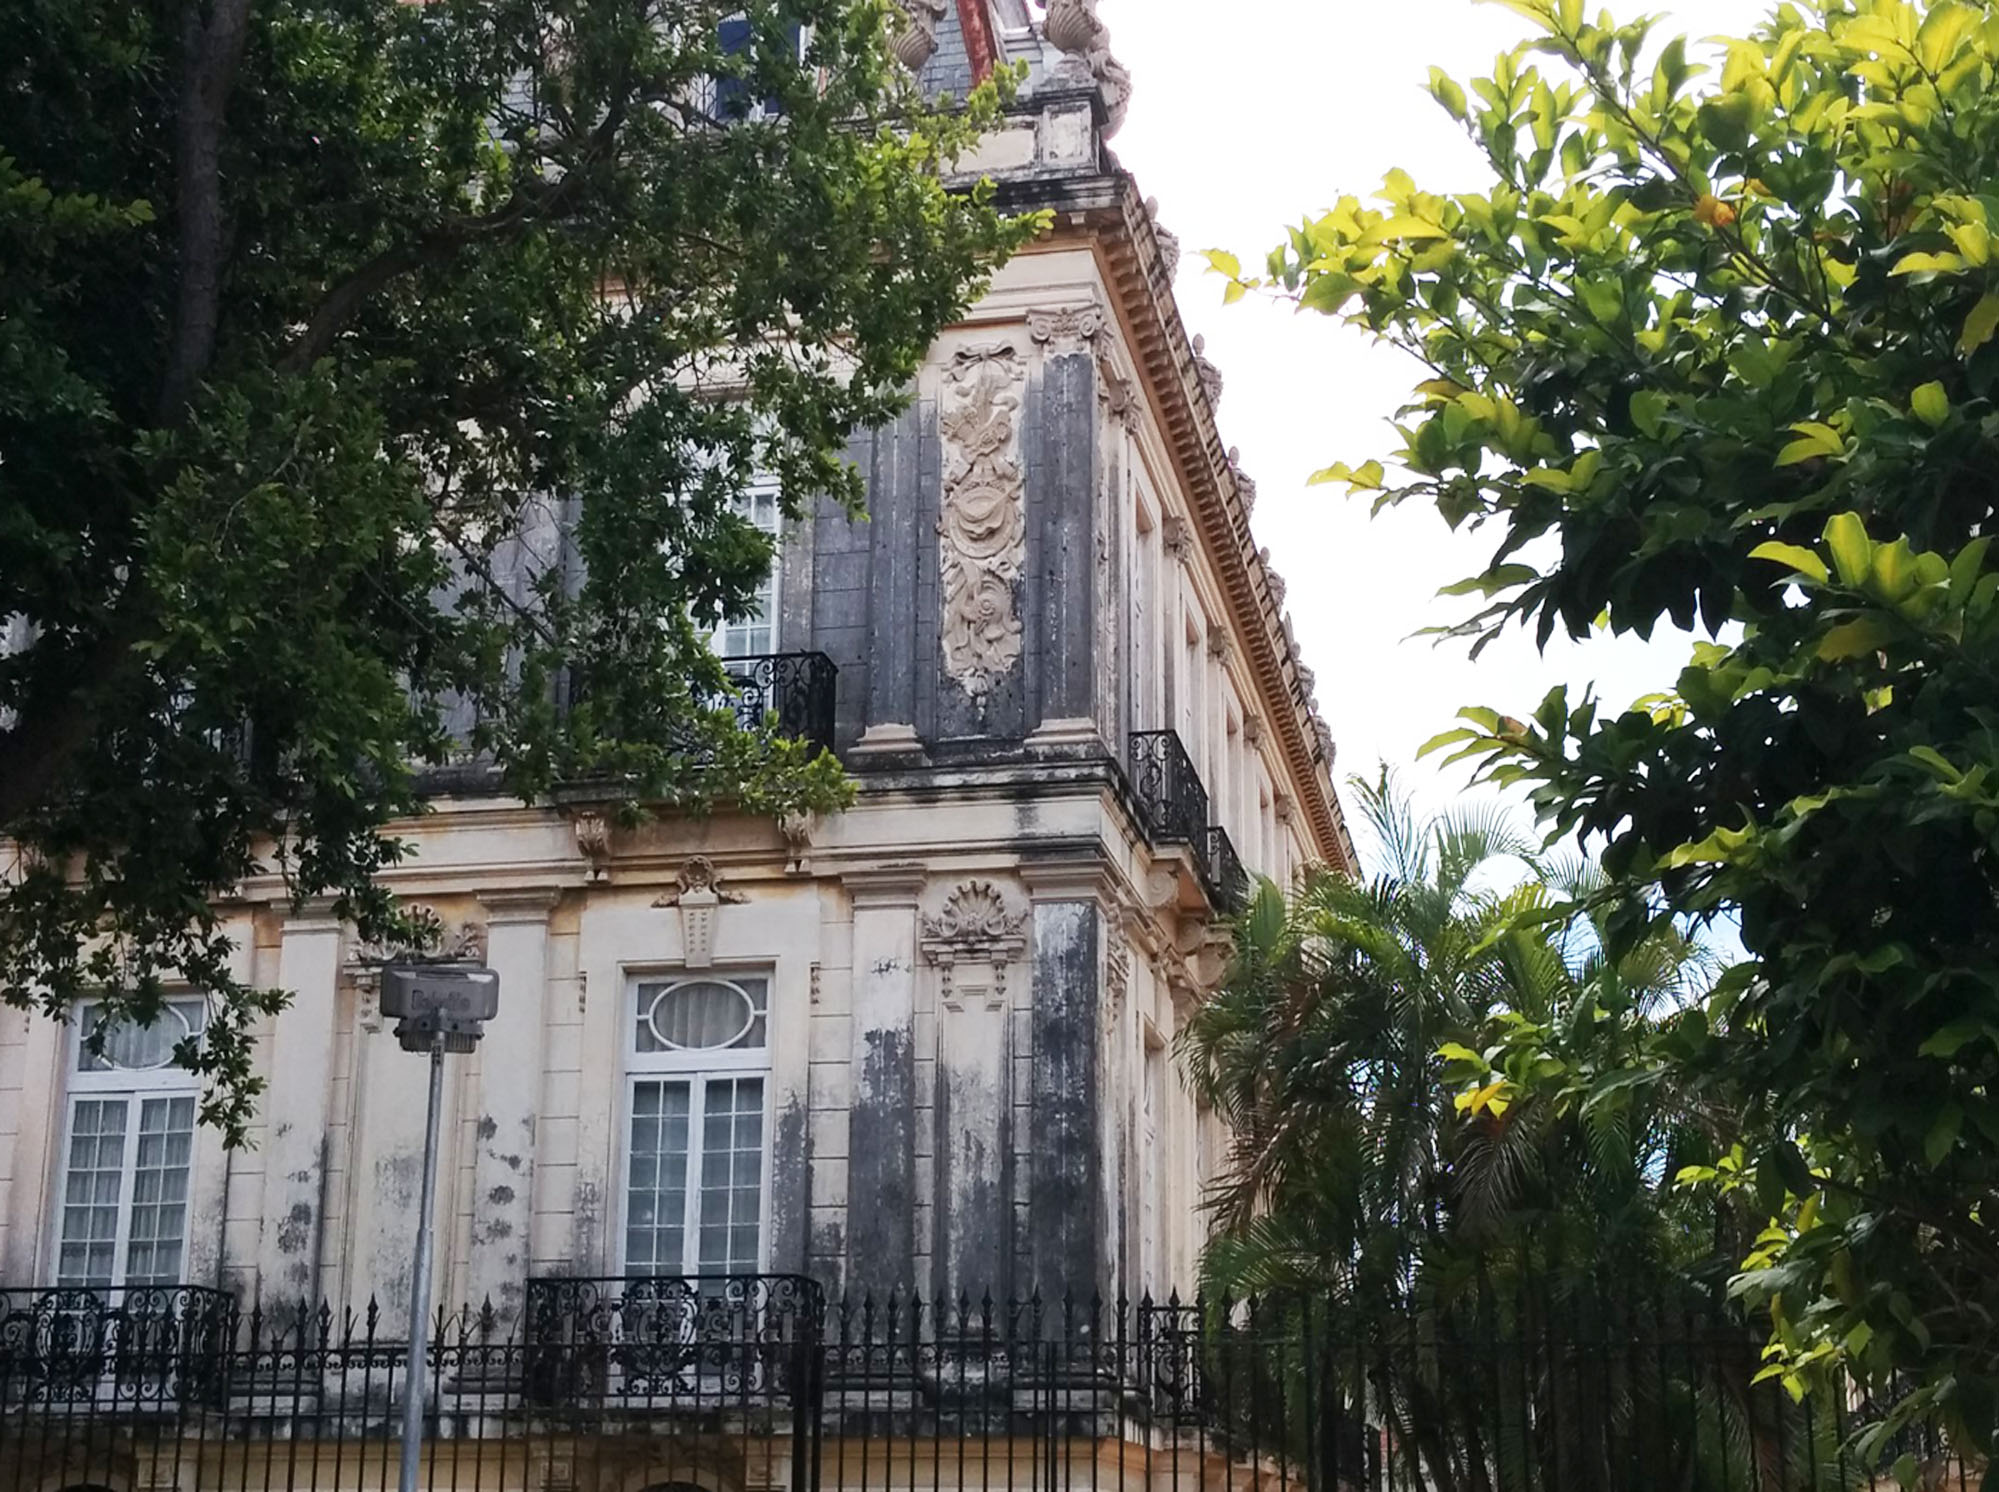 Grand old house on the Paseo - A complete guide to Merida, Mexico